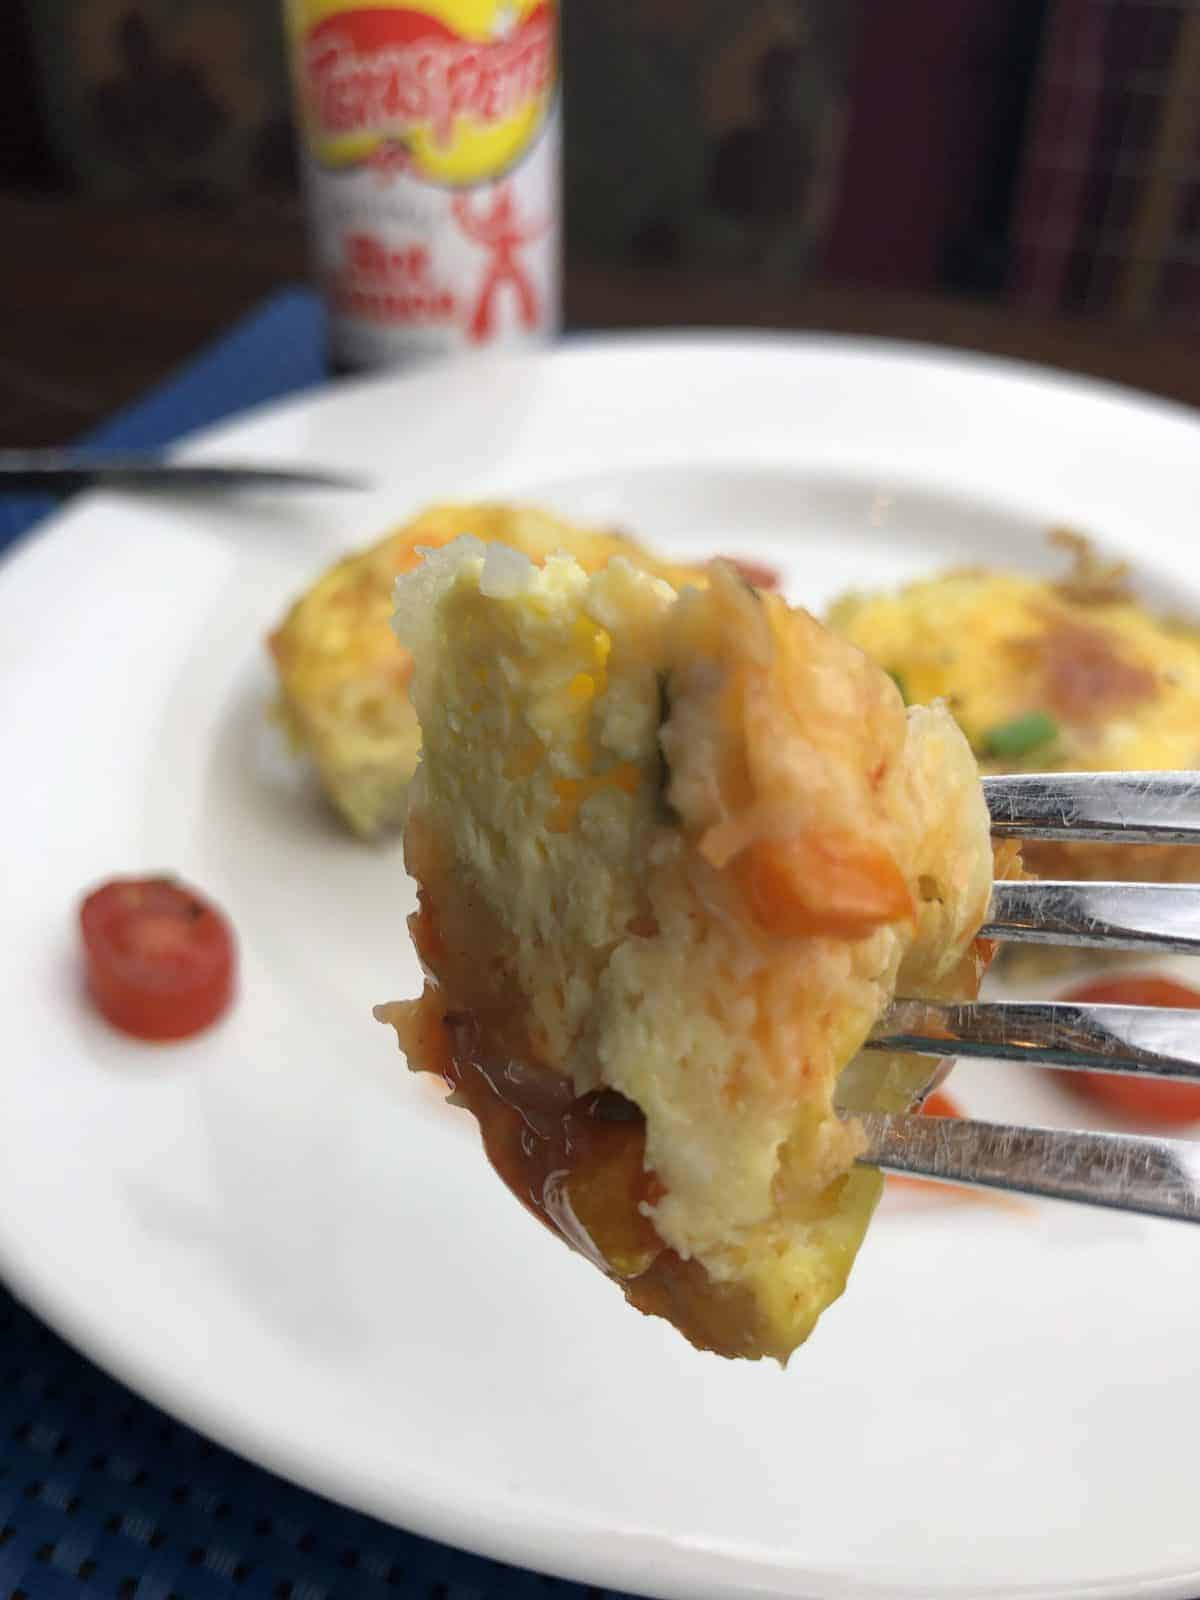 A frittata bite on a fork over a white plate with 2 mini frittatas on it with a knife